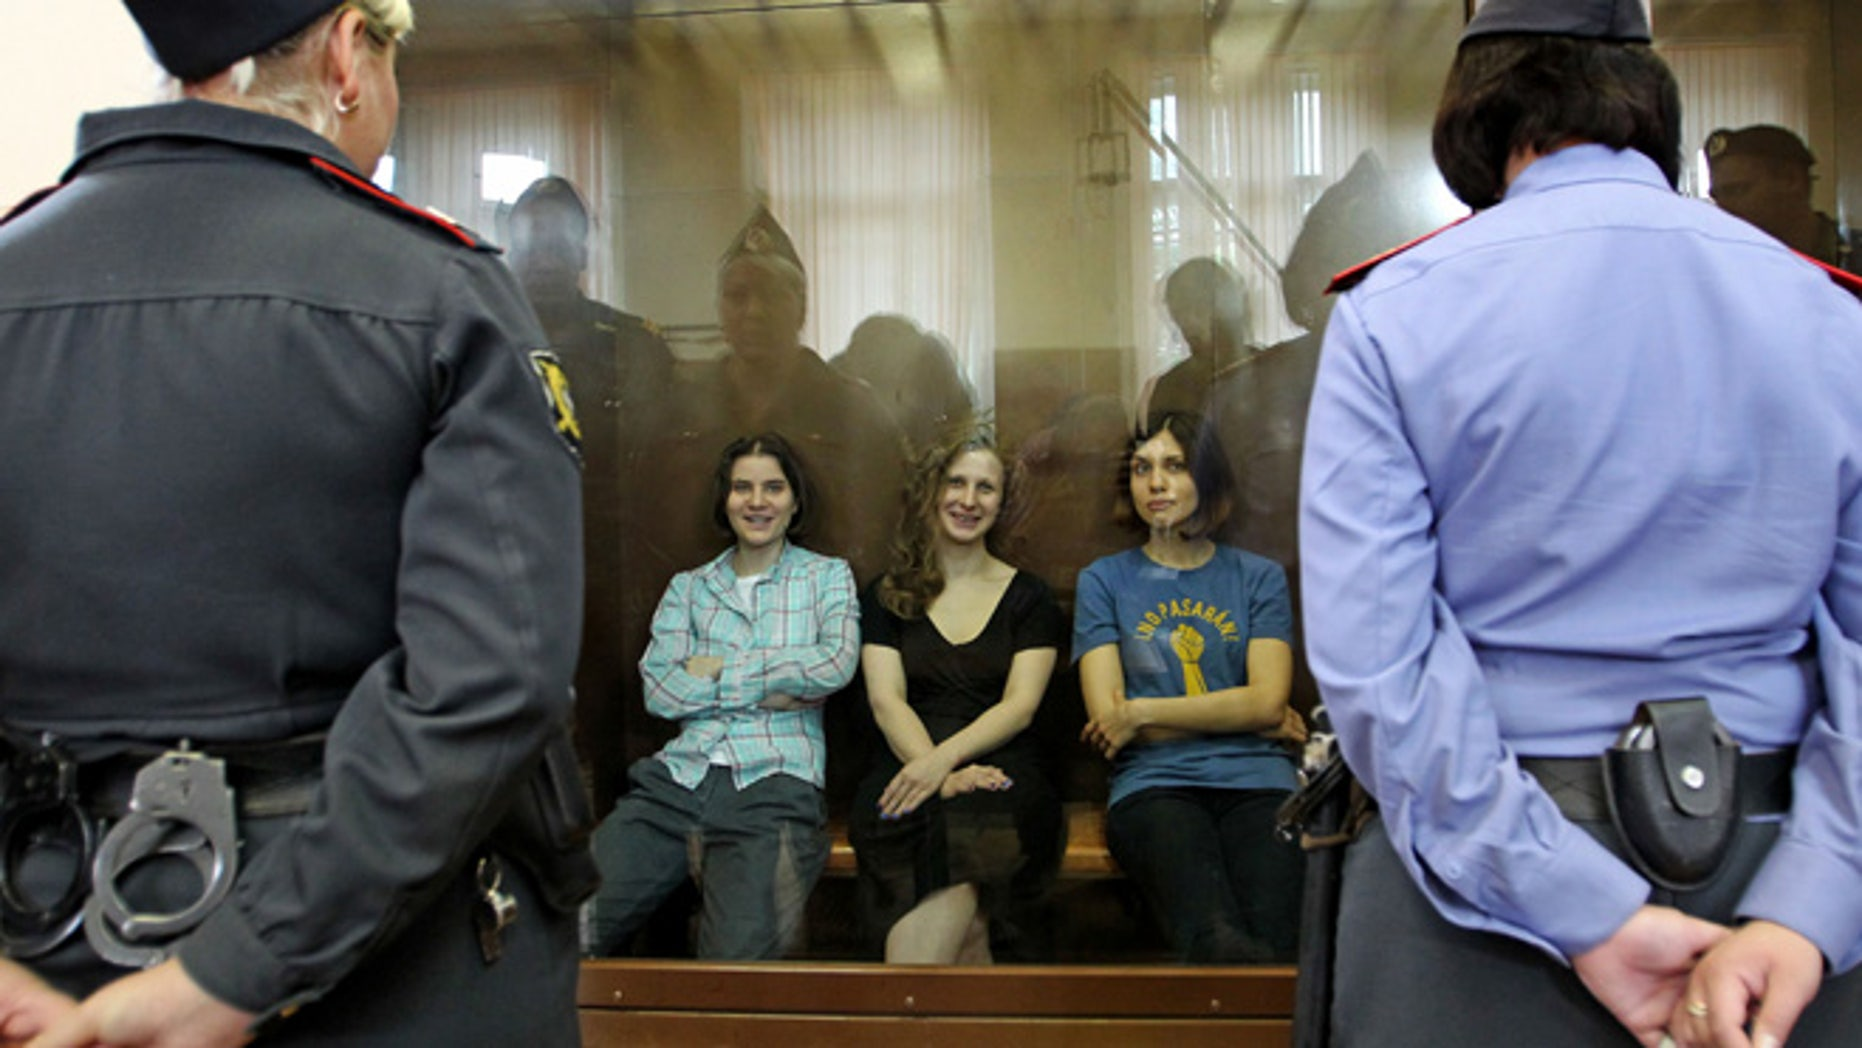 Aug. 17, 2012: Feminist punk group Pussy Riot members, from left, Yekaterina Samutsevich, Maria Alekhina and Nadezhda Tolokonnikova sit in a glass cage at a court room in Moscow, Russia .